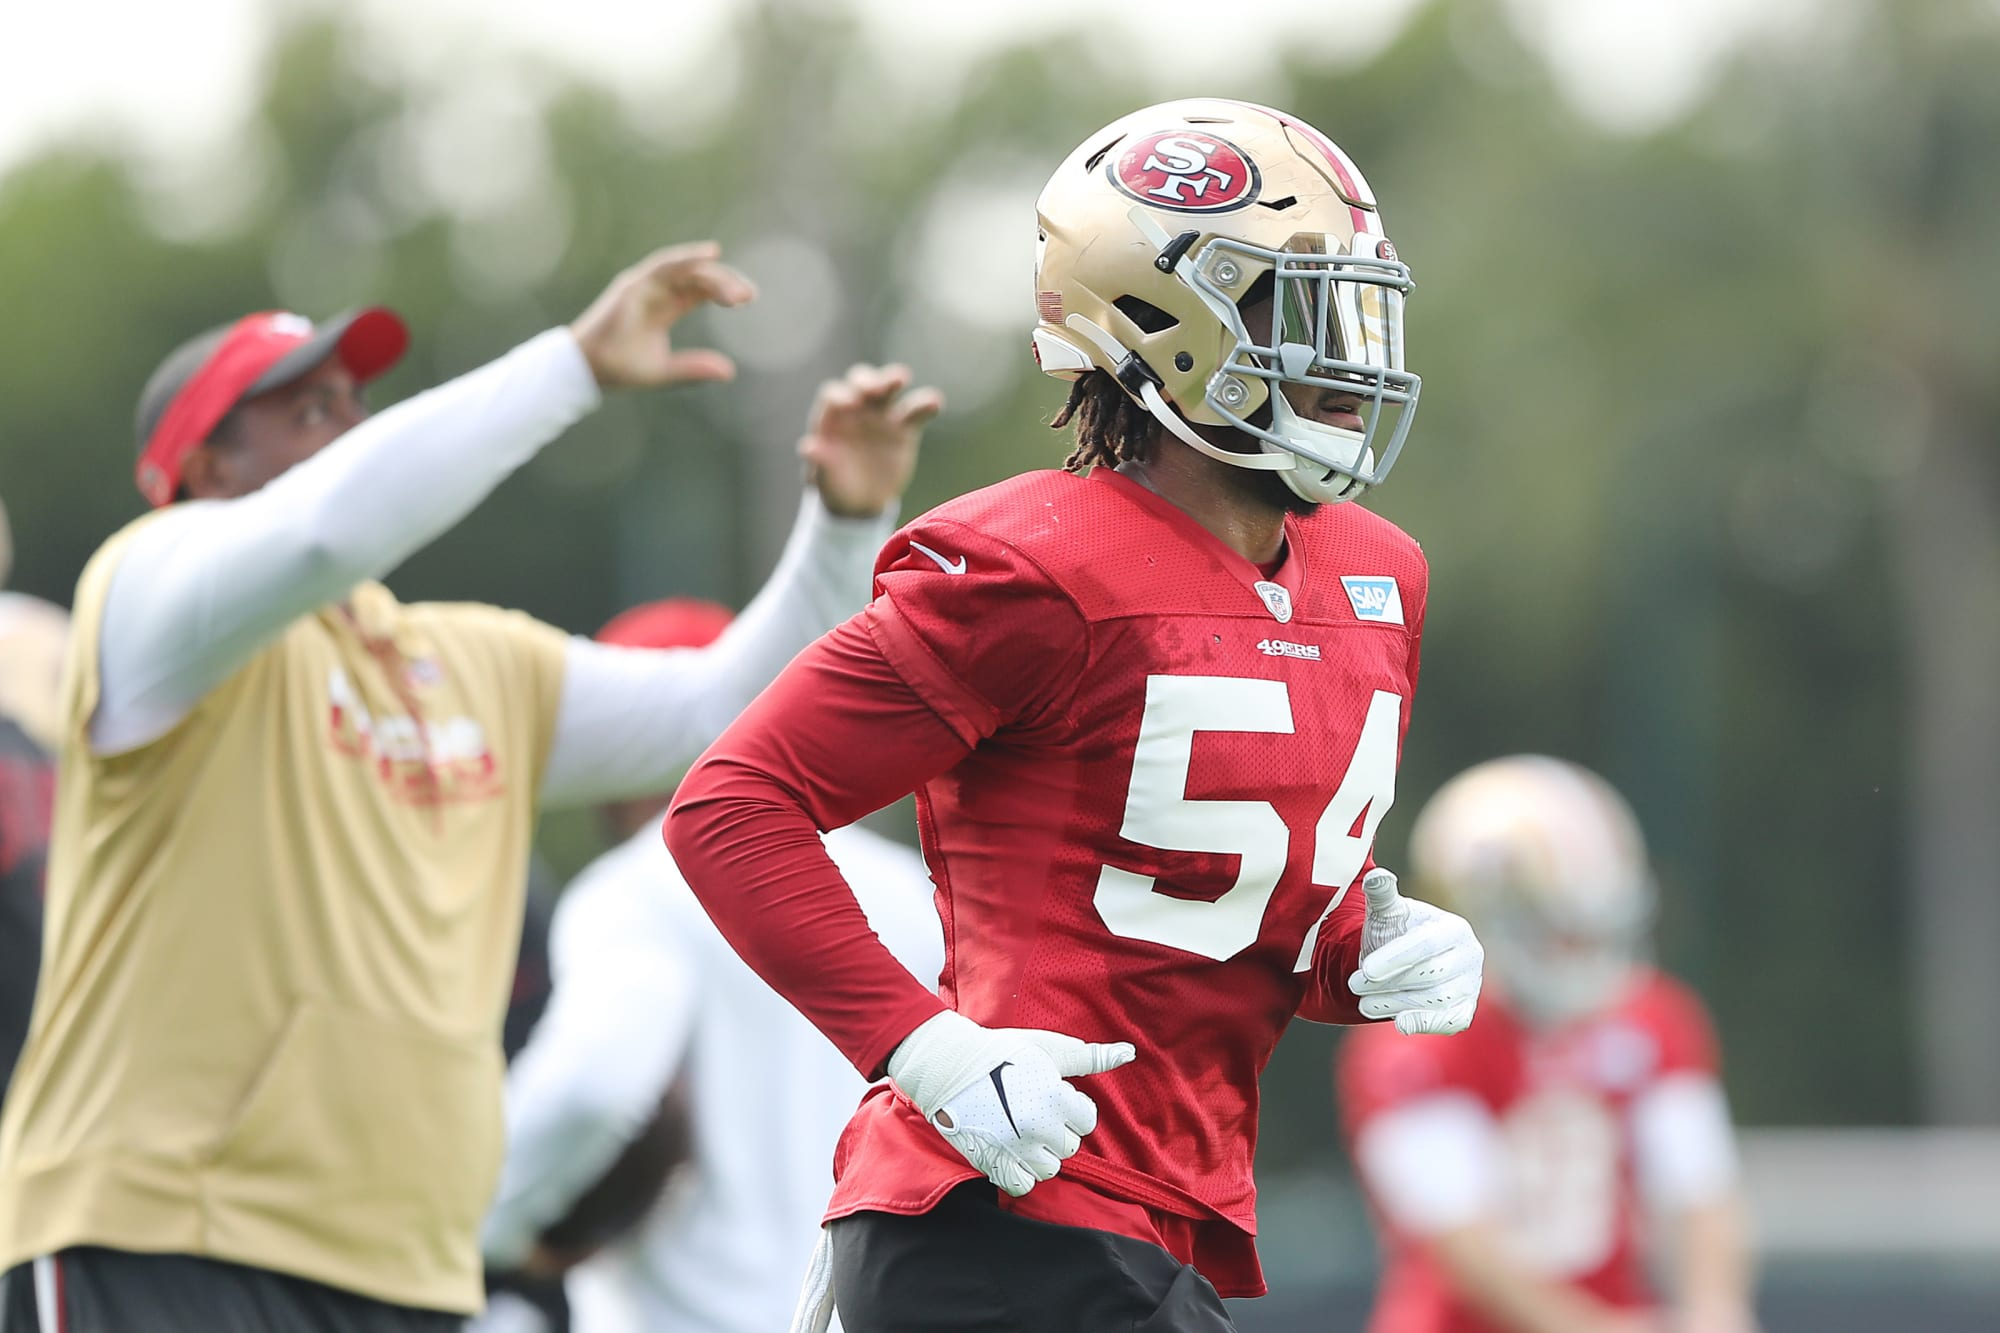 49ers have few difficulties to iron out ahead of Week 2 against the New York Jets